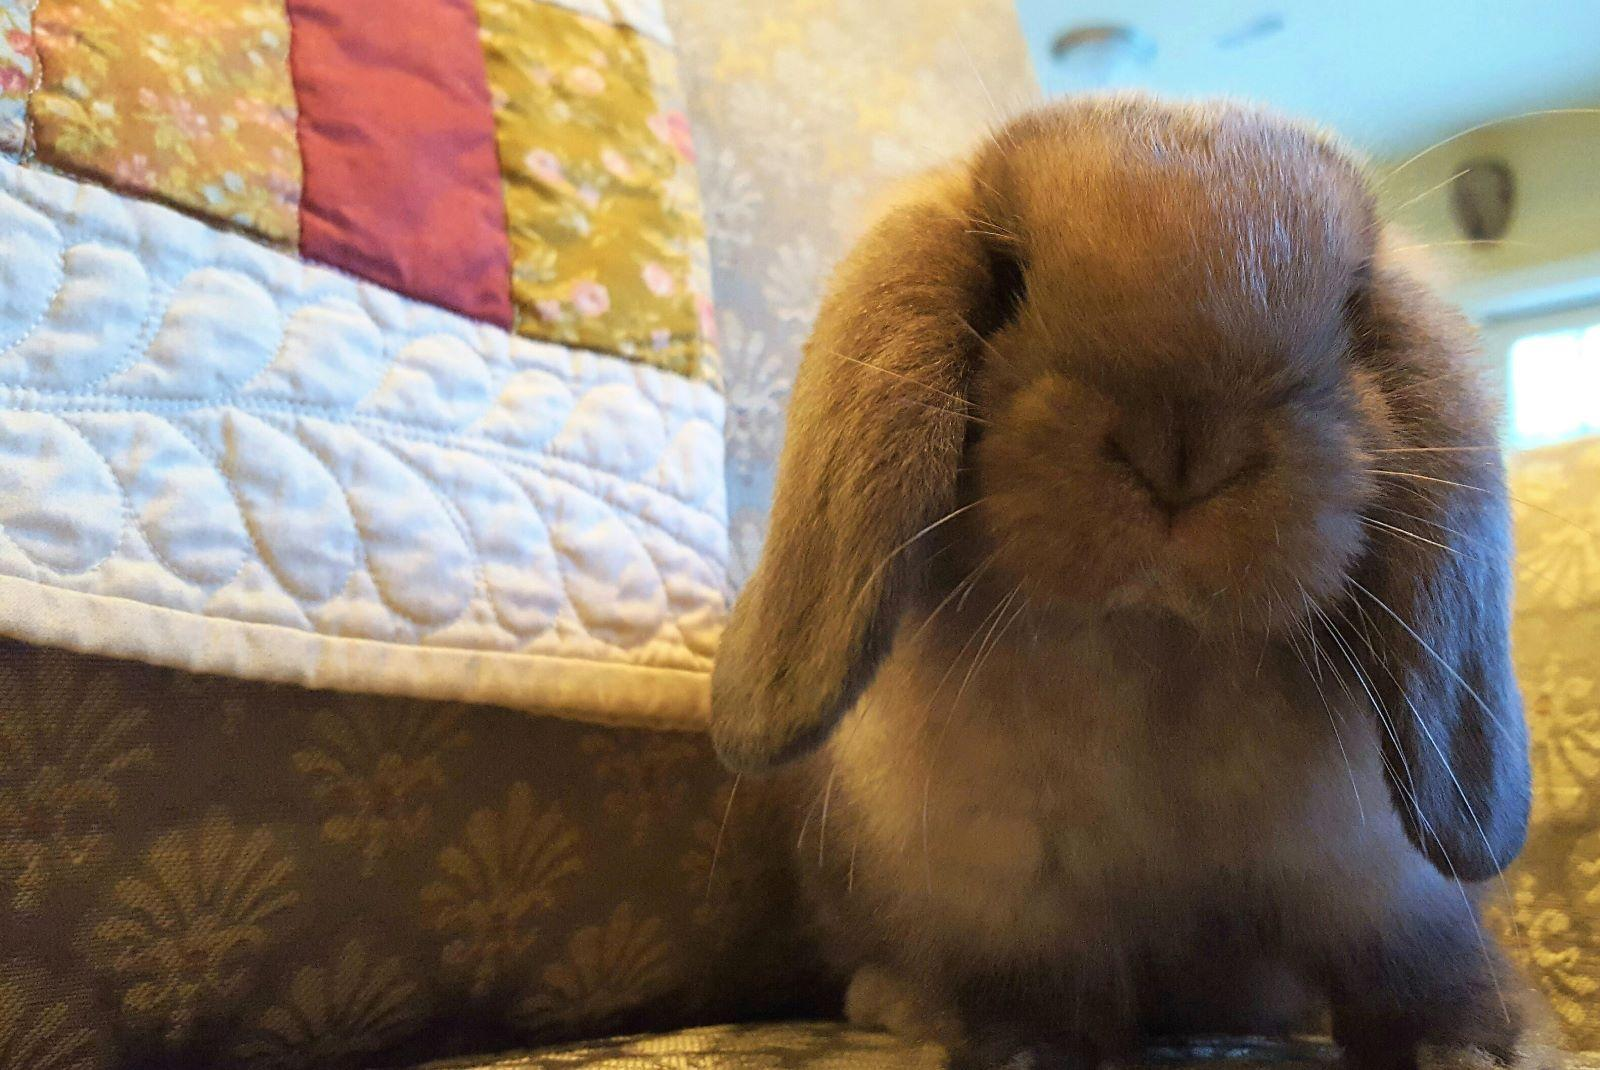 Know The Facts Before Buying Pet Bunny For Easter Peoria Public Radio